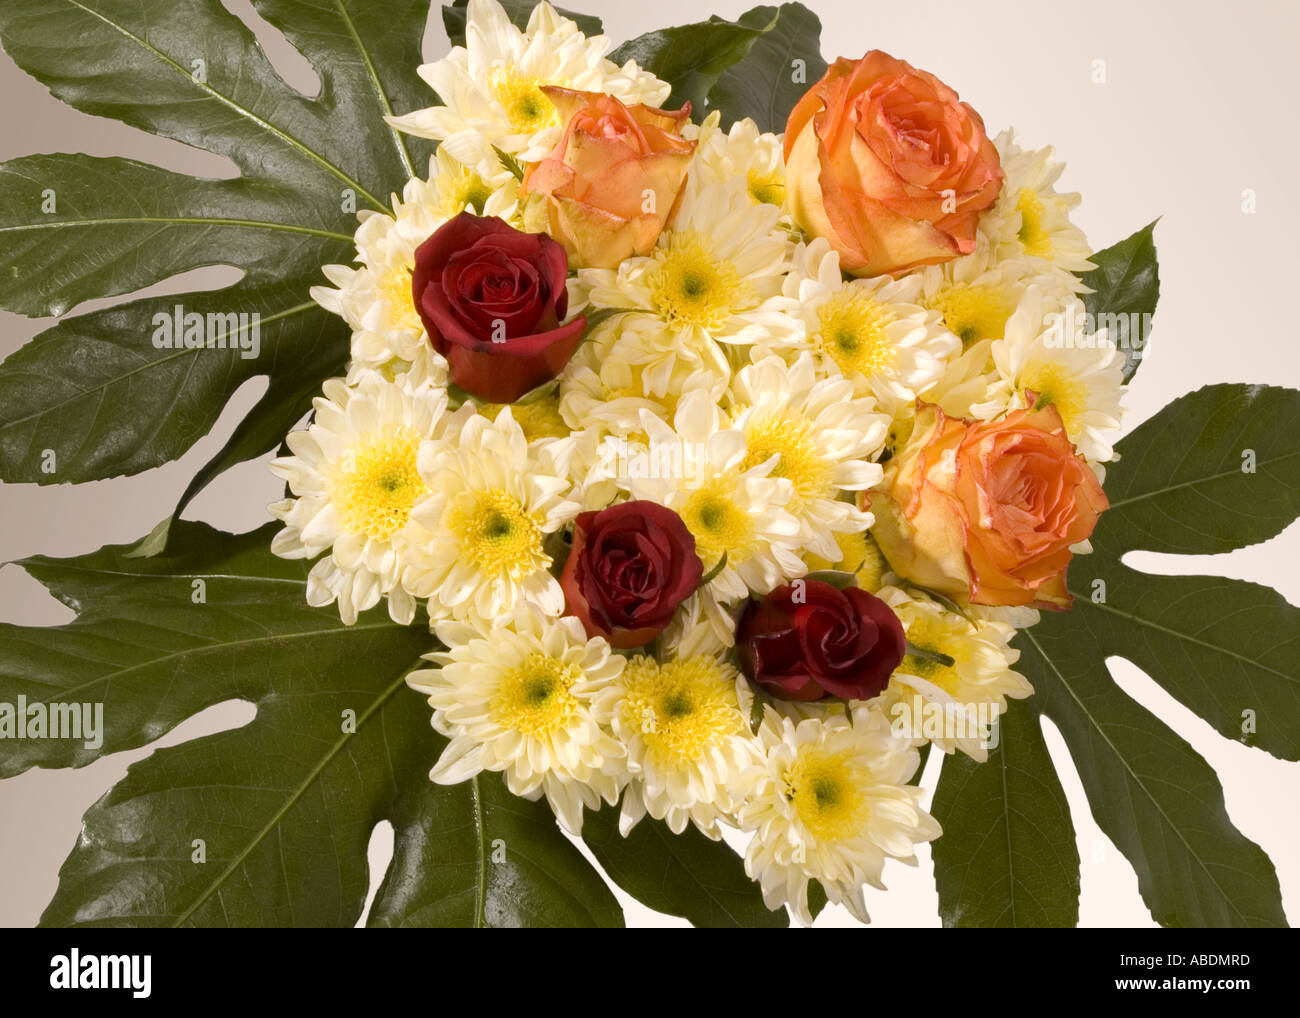 Flowers bouquet bunch of flowers stock photo 7349372 alamy flowers bouquet bunch of flowers izmirmasajfo